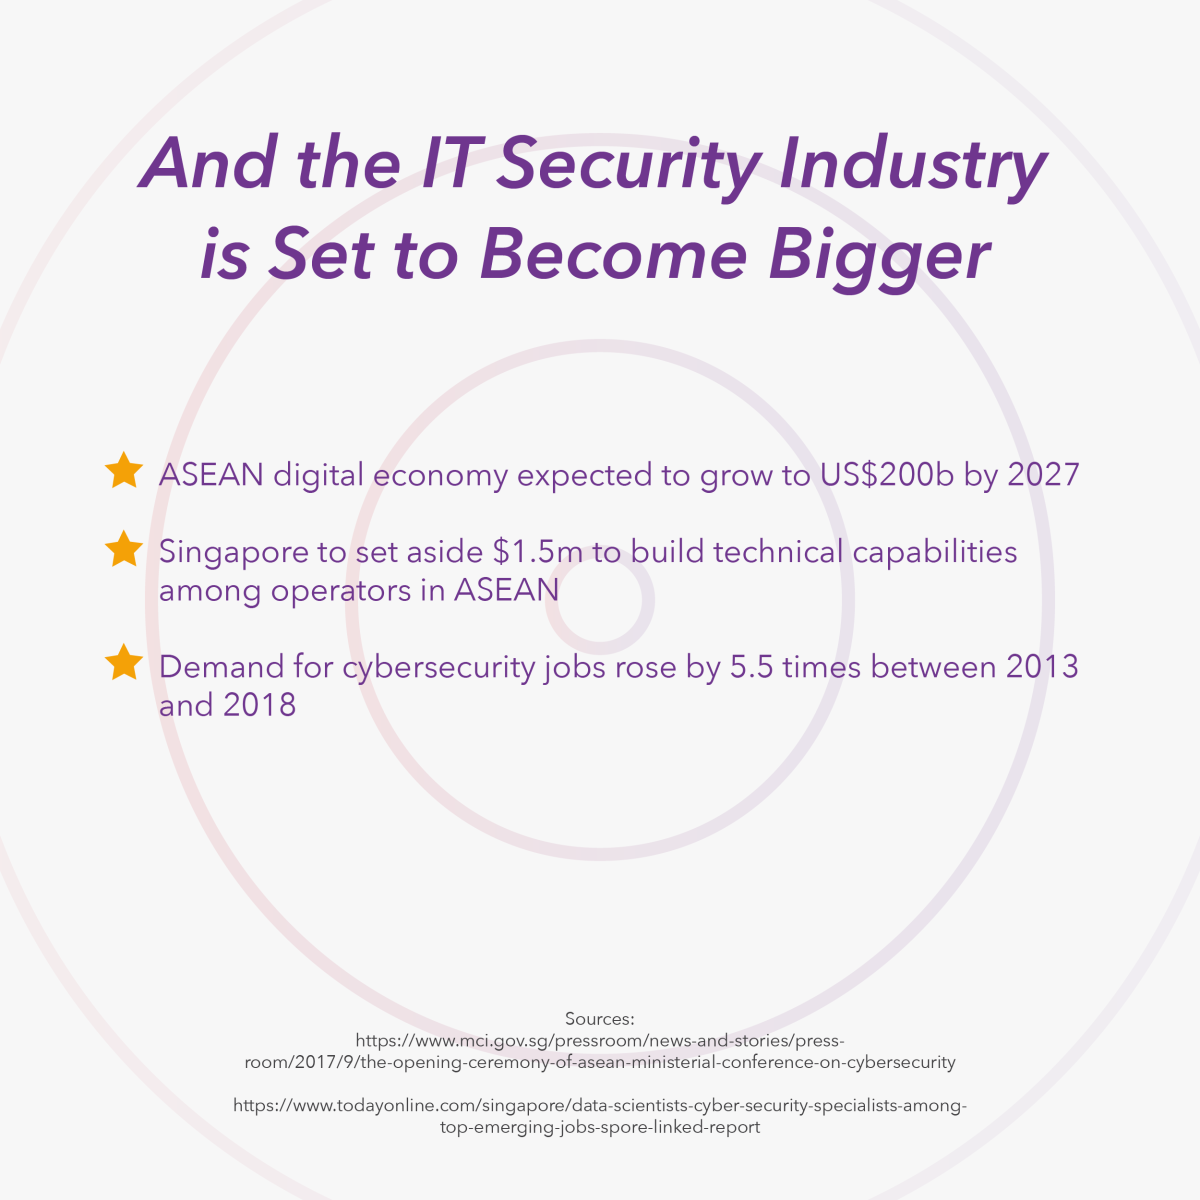 IT Security Industry is set to become bigger